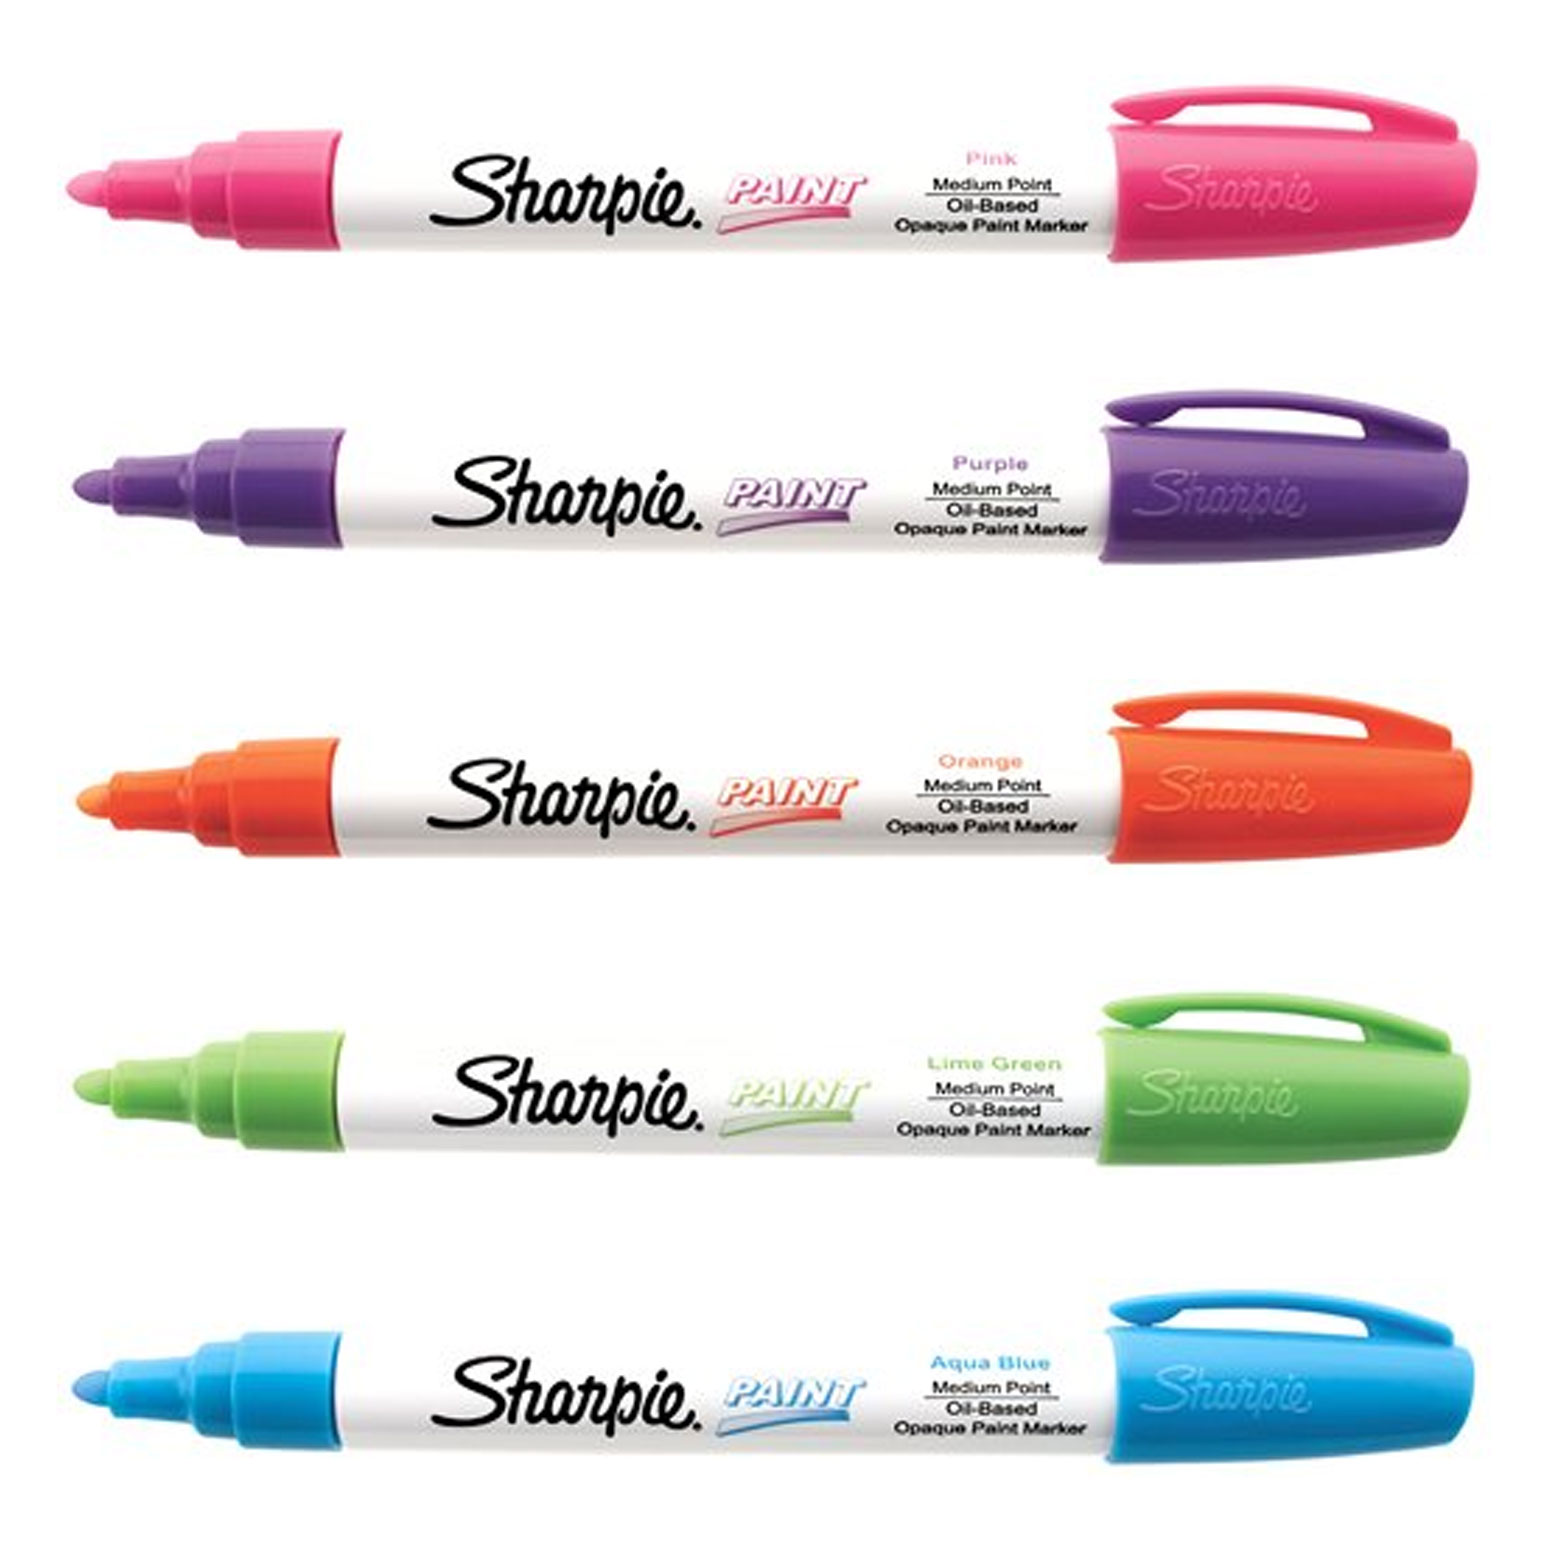 Sharpie Paint Marker Summer Color Kit 5pk Assorted Oil Based Medium Point Marker